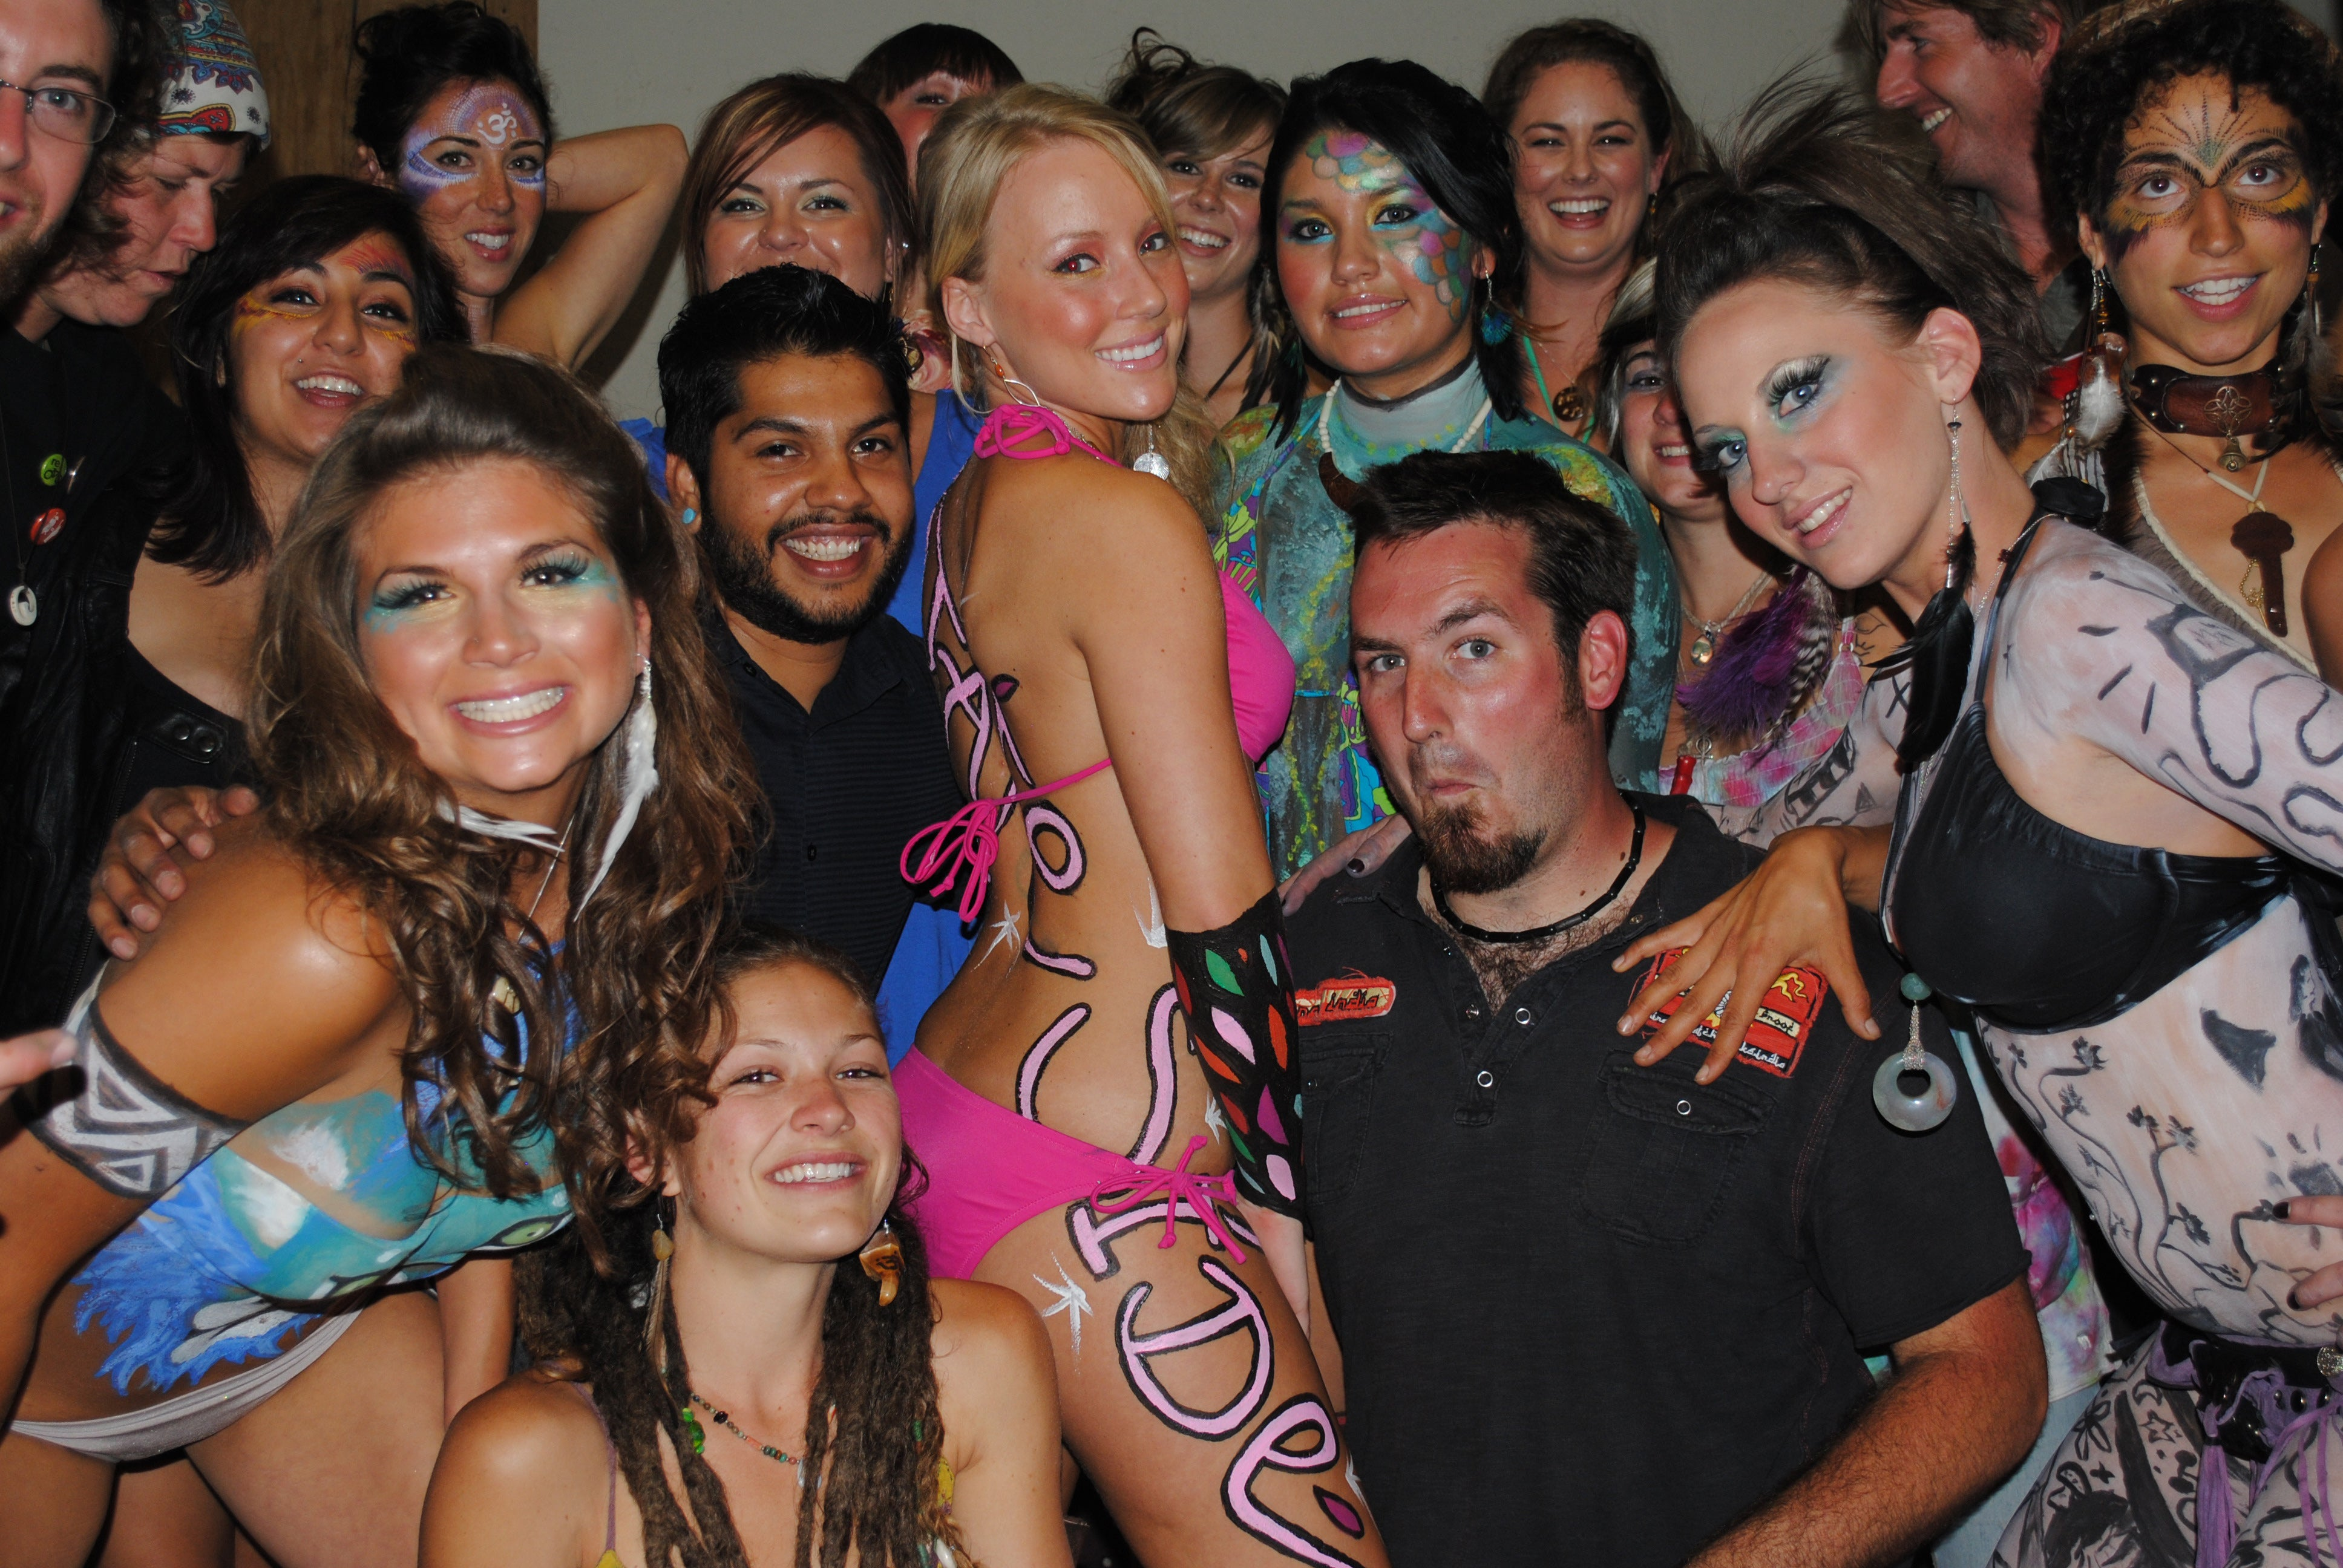 Group of people, body painting event